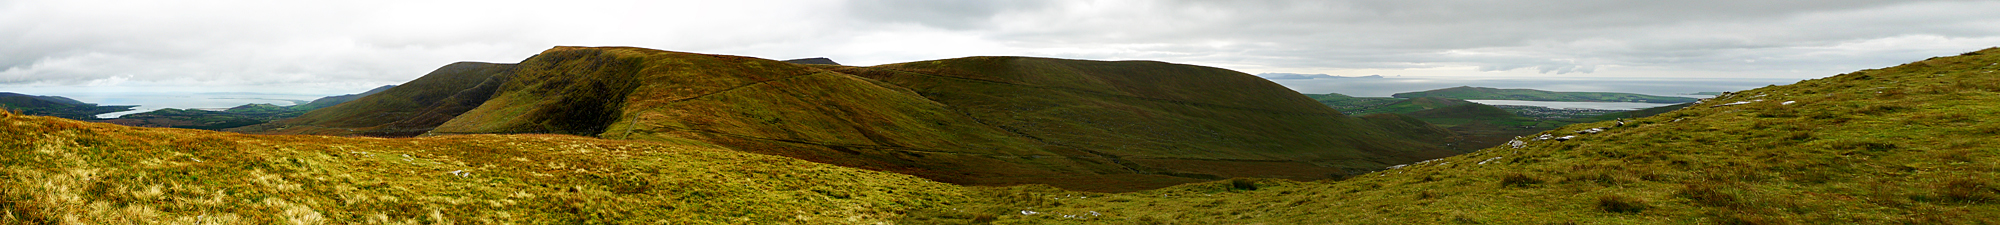 Panorama from north to south shore of Dingle Peninsula